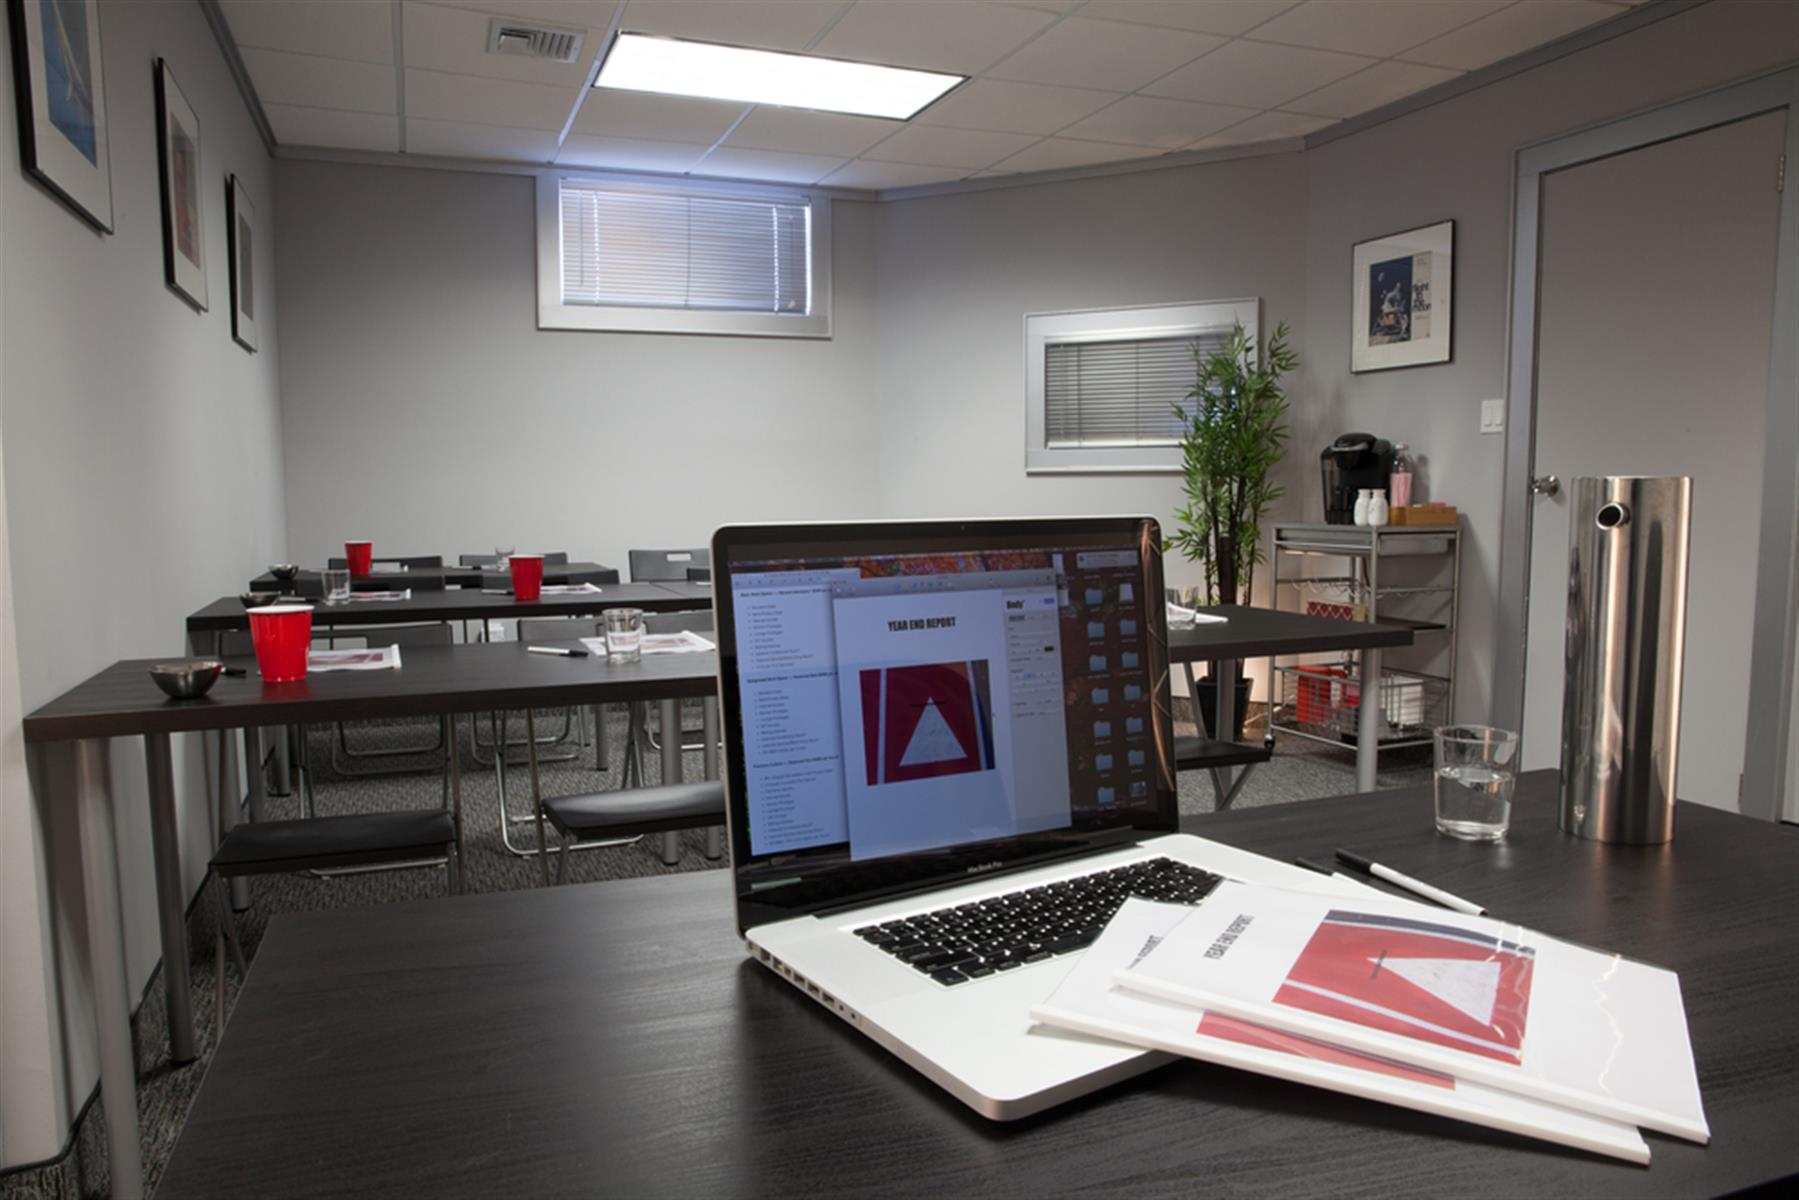 Instant Office - East Northport, NY - Training/Seminar Room